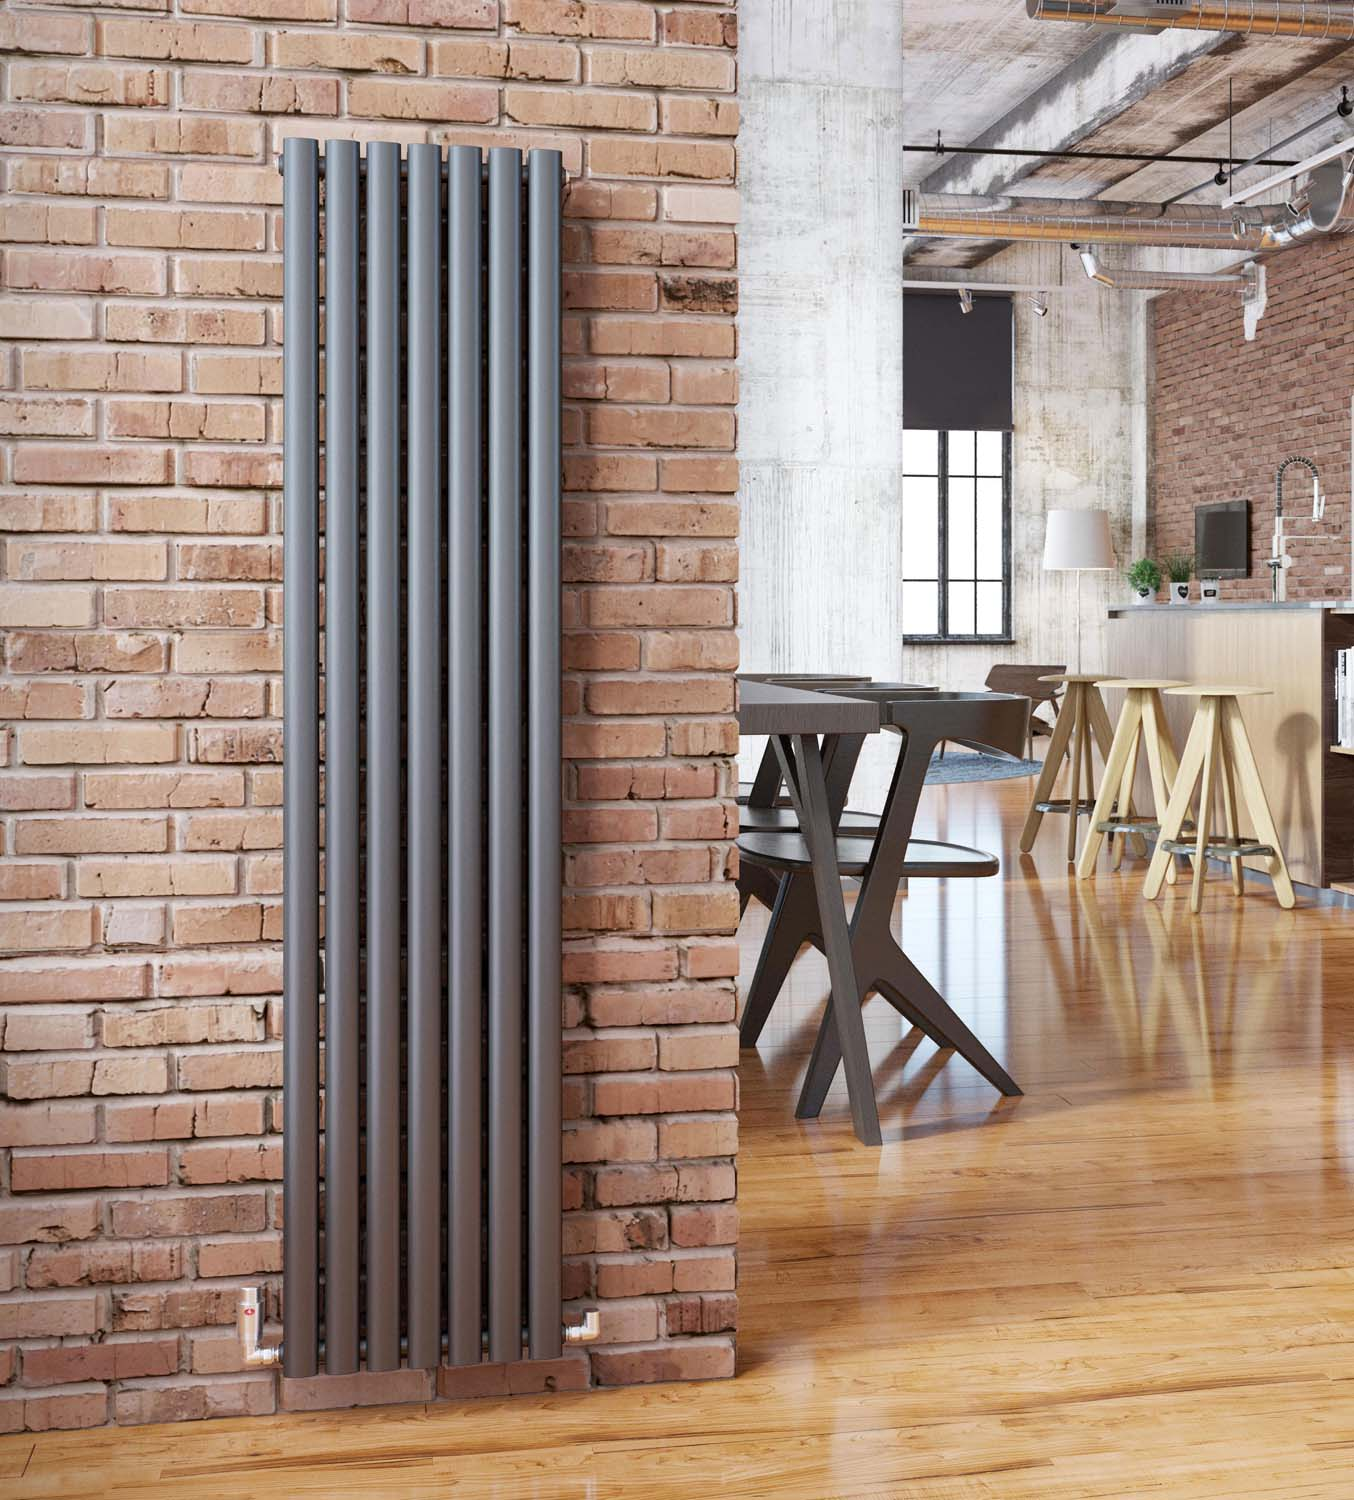 Choosing the Best Designer Radiator for Your Home